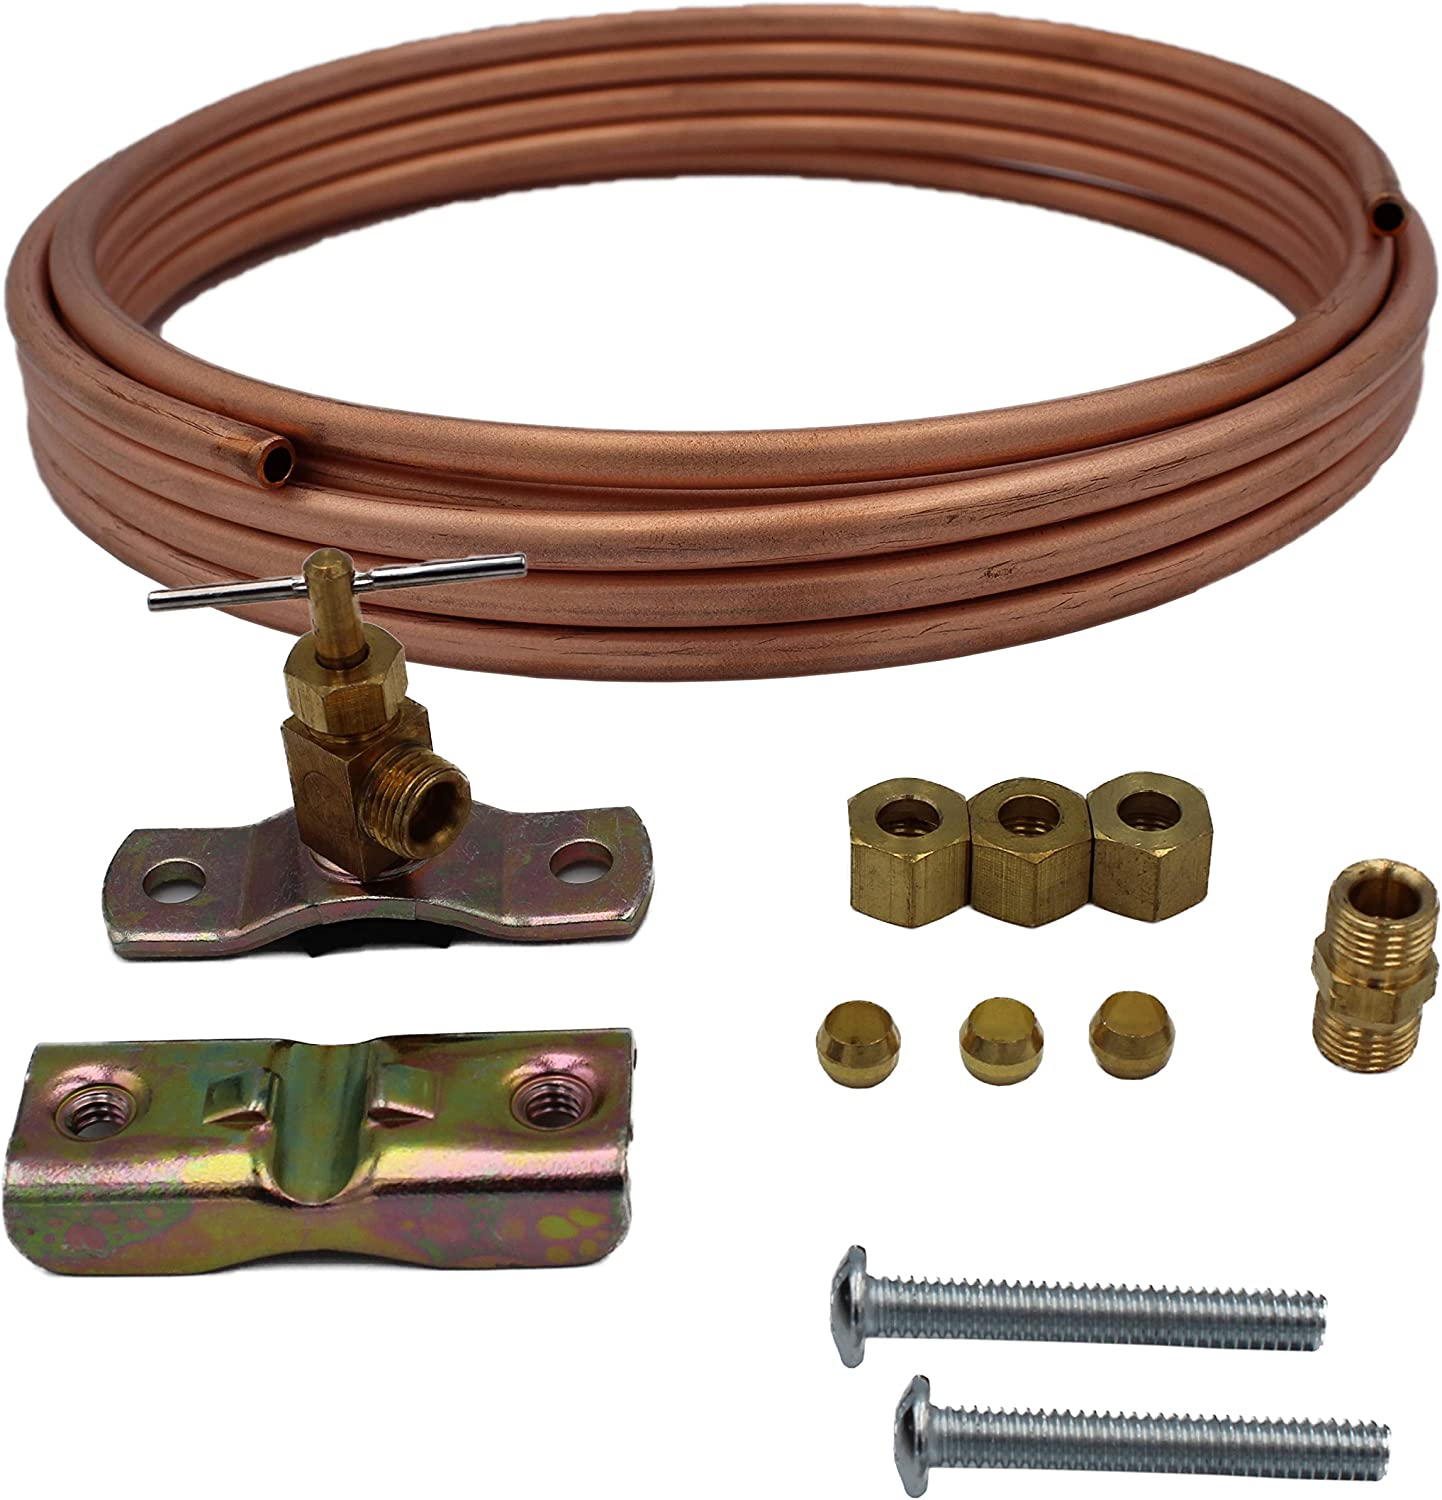 Supplying Demand 8003RP C15 Copper Line Tubing Kit For Icemaker Ice Machine Residential Water Or Humidifier Installation Hook Up - Self Tapping Valve Included (15 Foot)